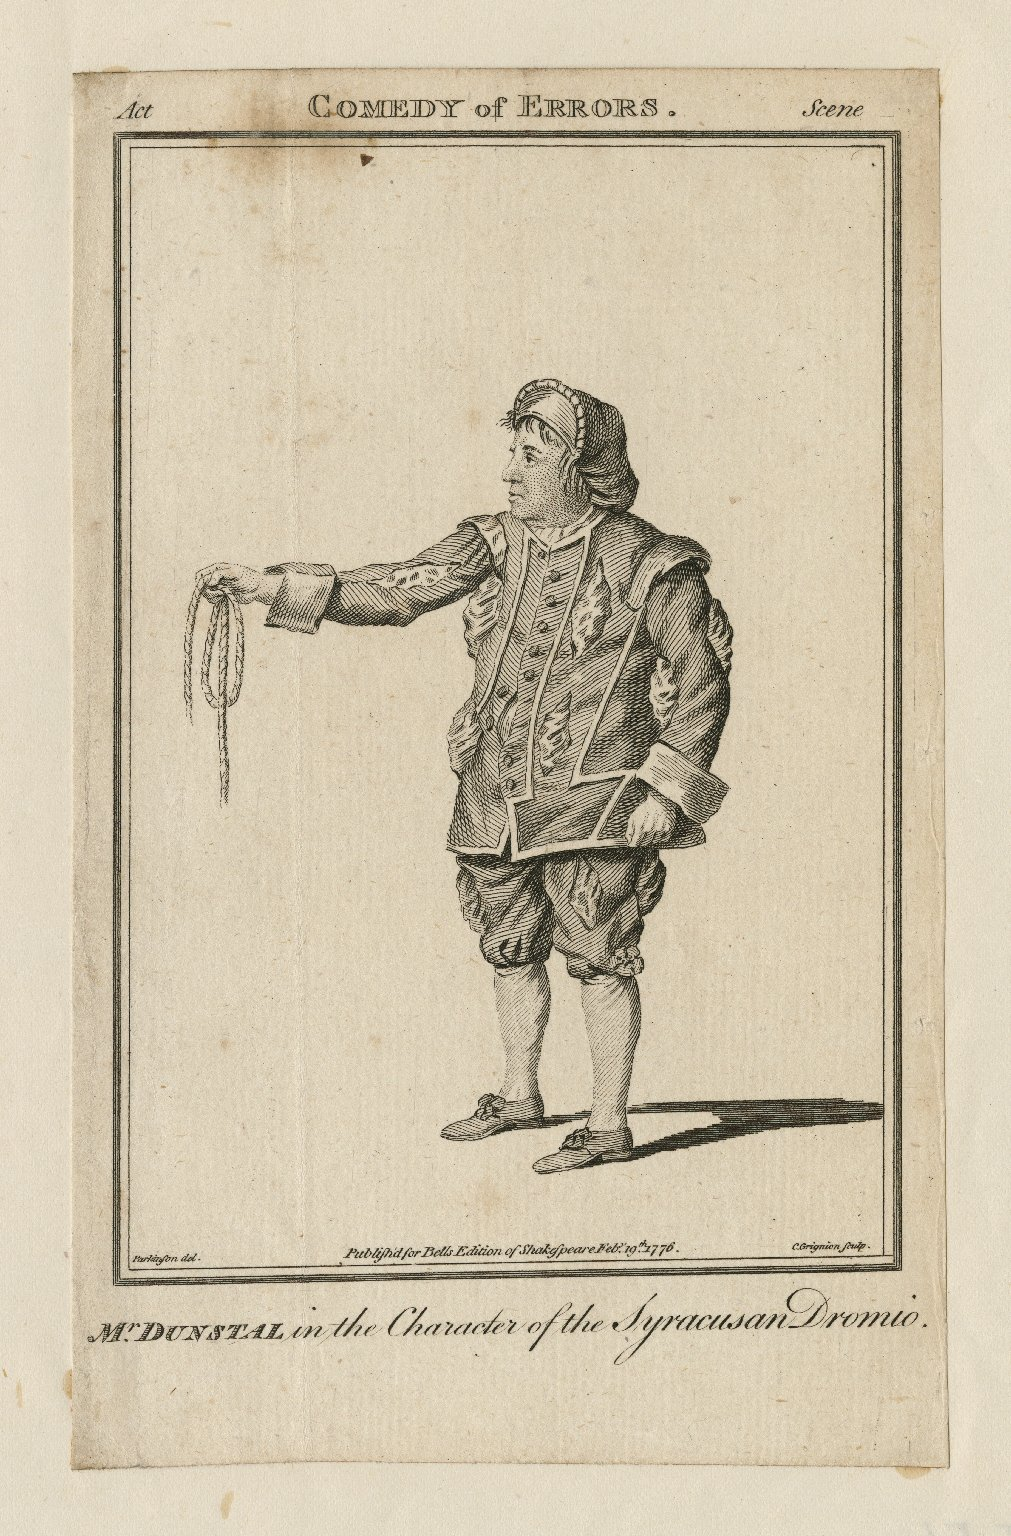 Mr. Dunstall in the character of the Syracusan Dromio [in Shakespeare's Comedy of errors] [graphic] / Parkinson del. ; C. Grignion sculp.